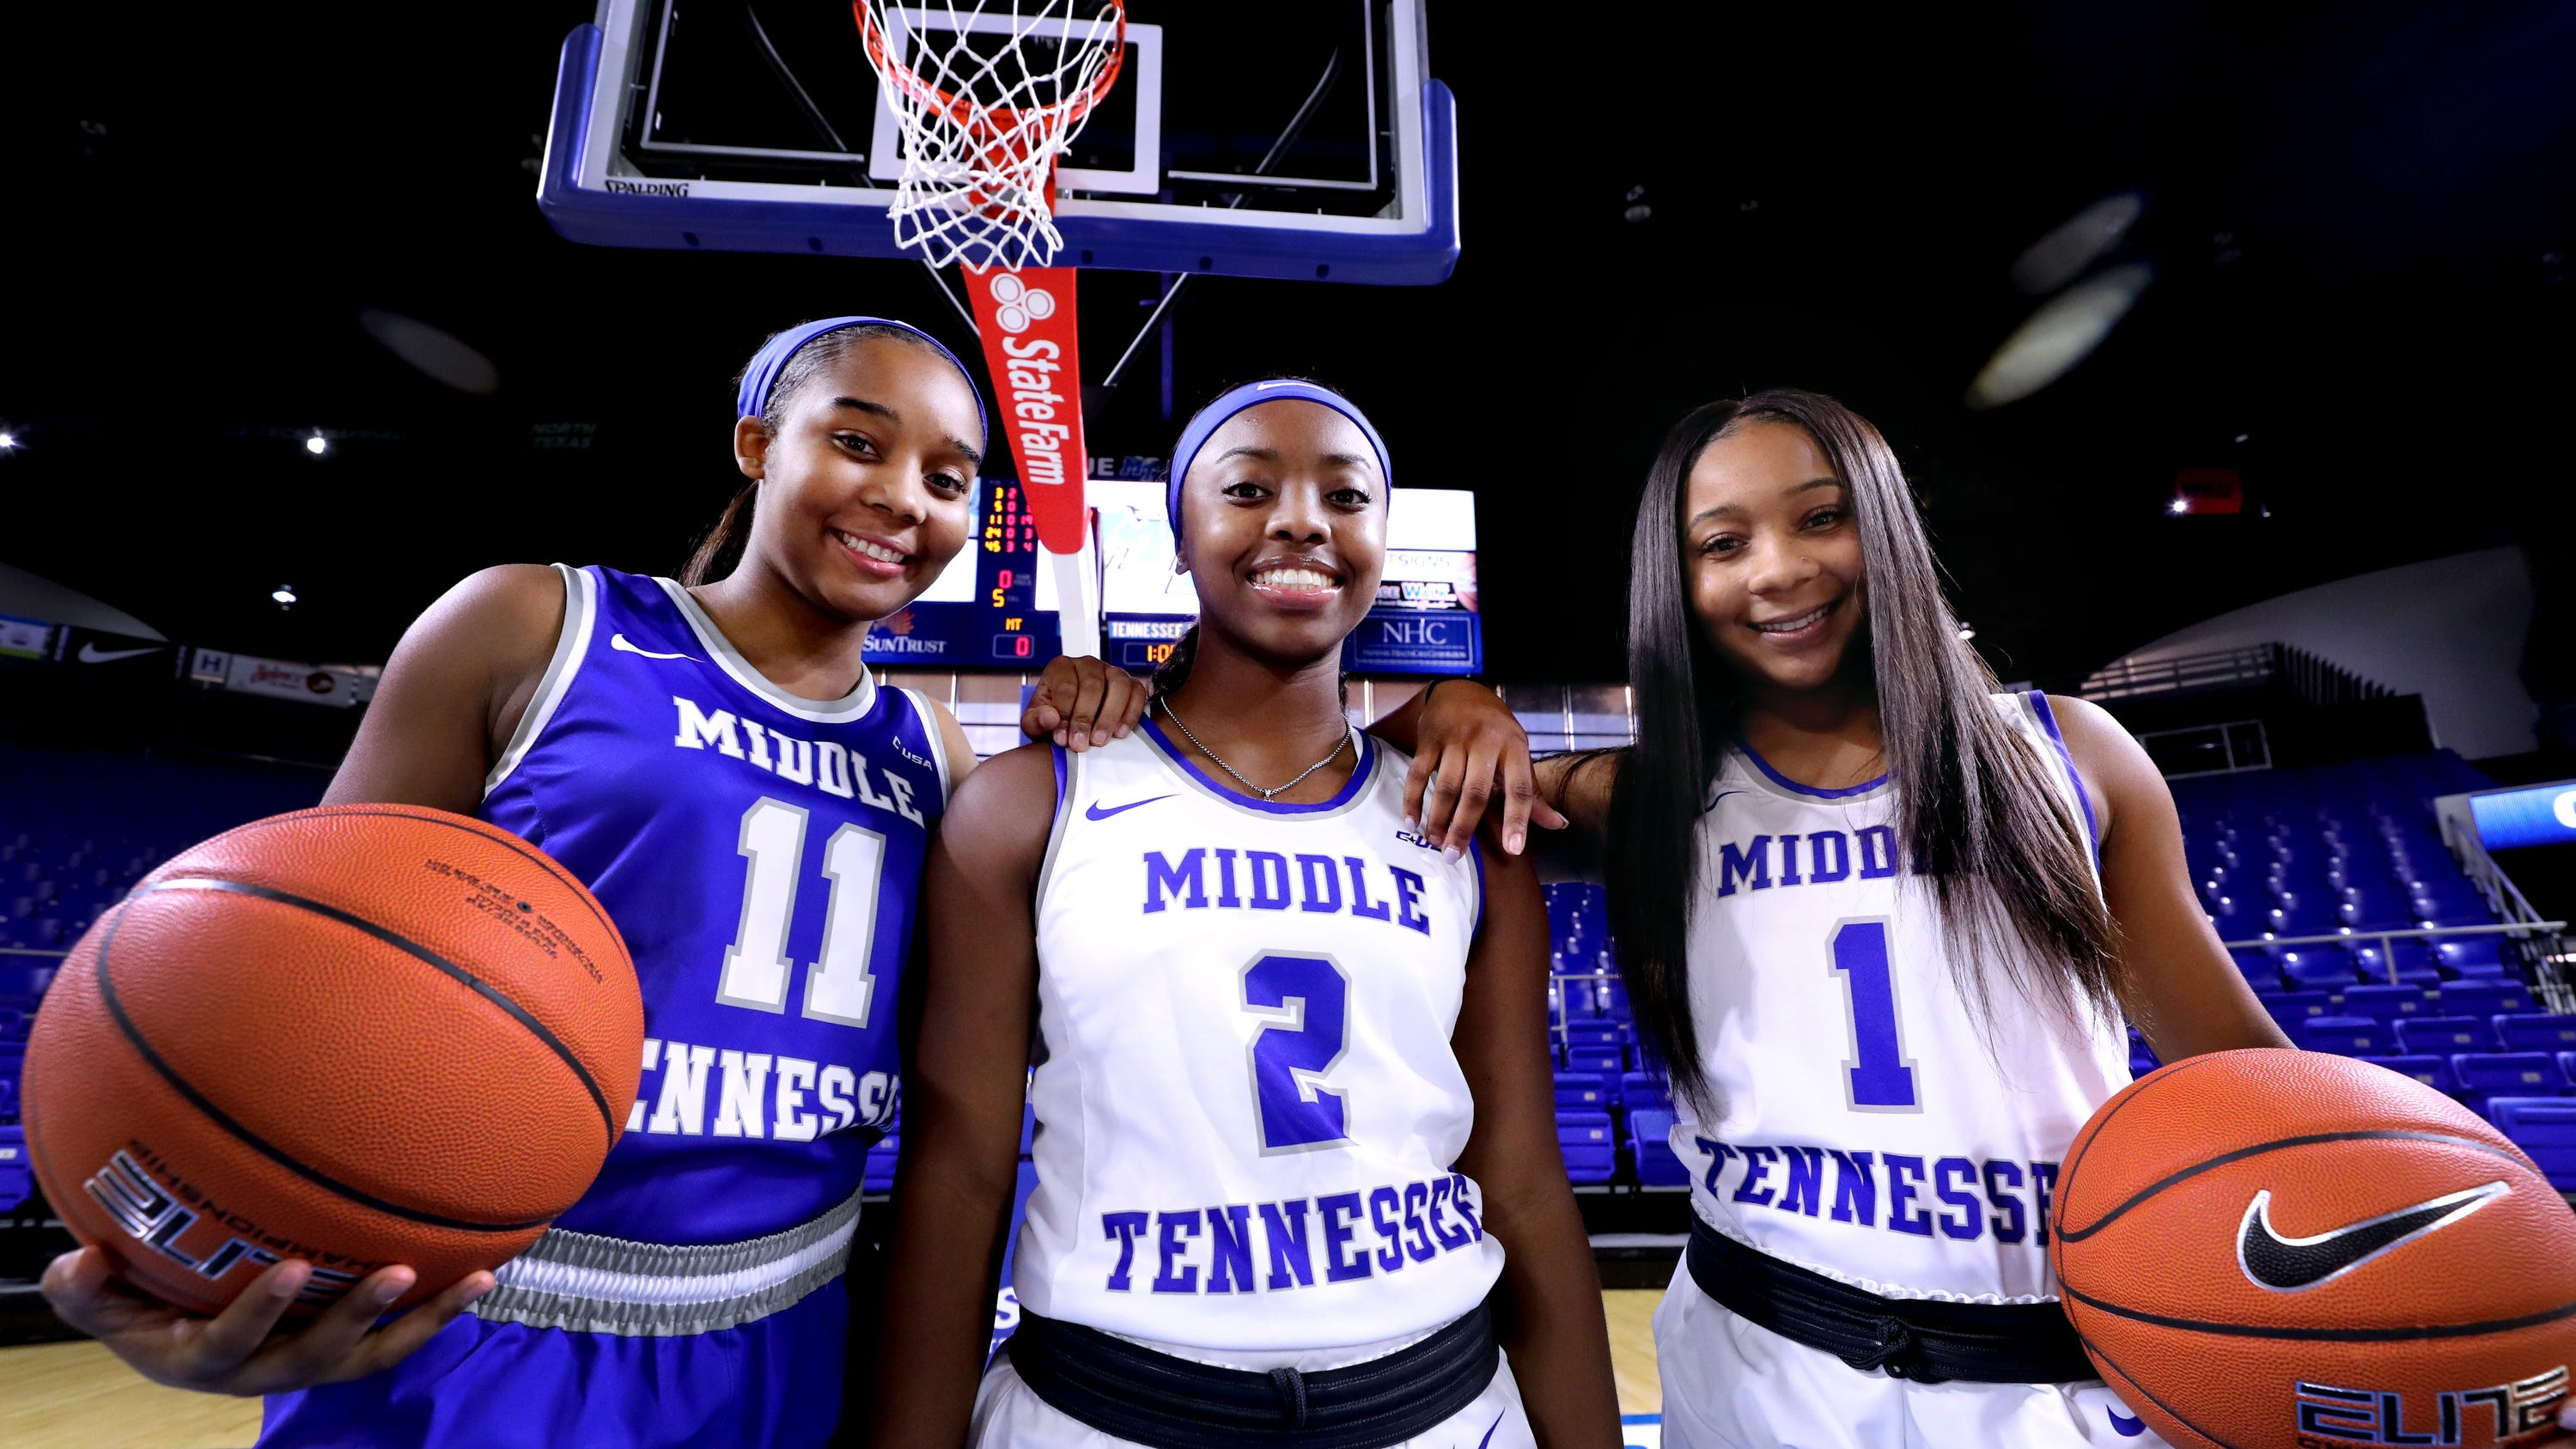 MTSU 64, Tulane 62: Aislynn Hayes completes comeback for MTSU with game-winning 3